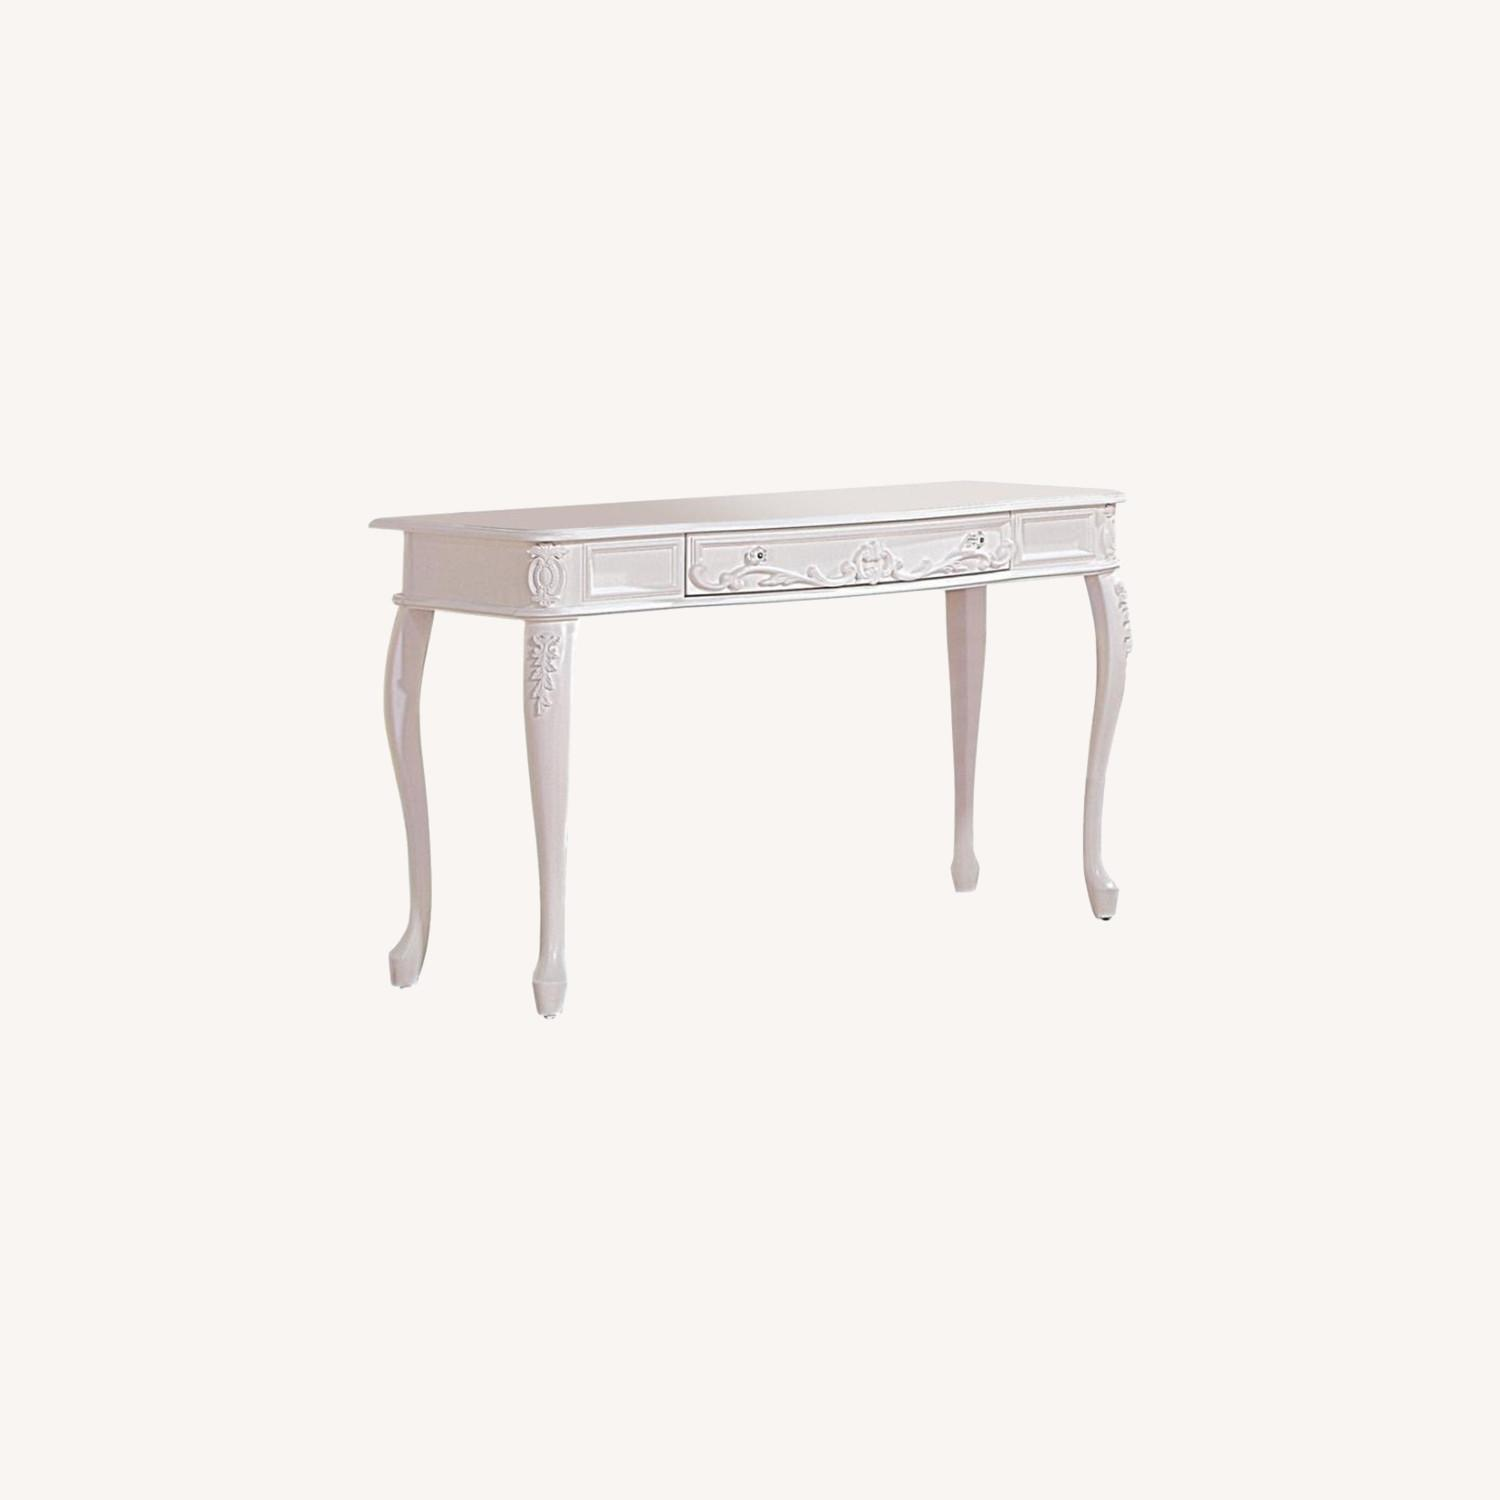 Vanity Desk In White Finish W/ Elegant Details - image-4